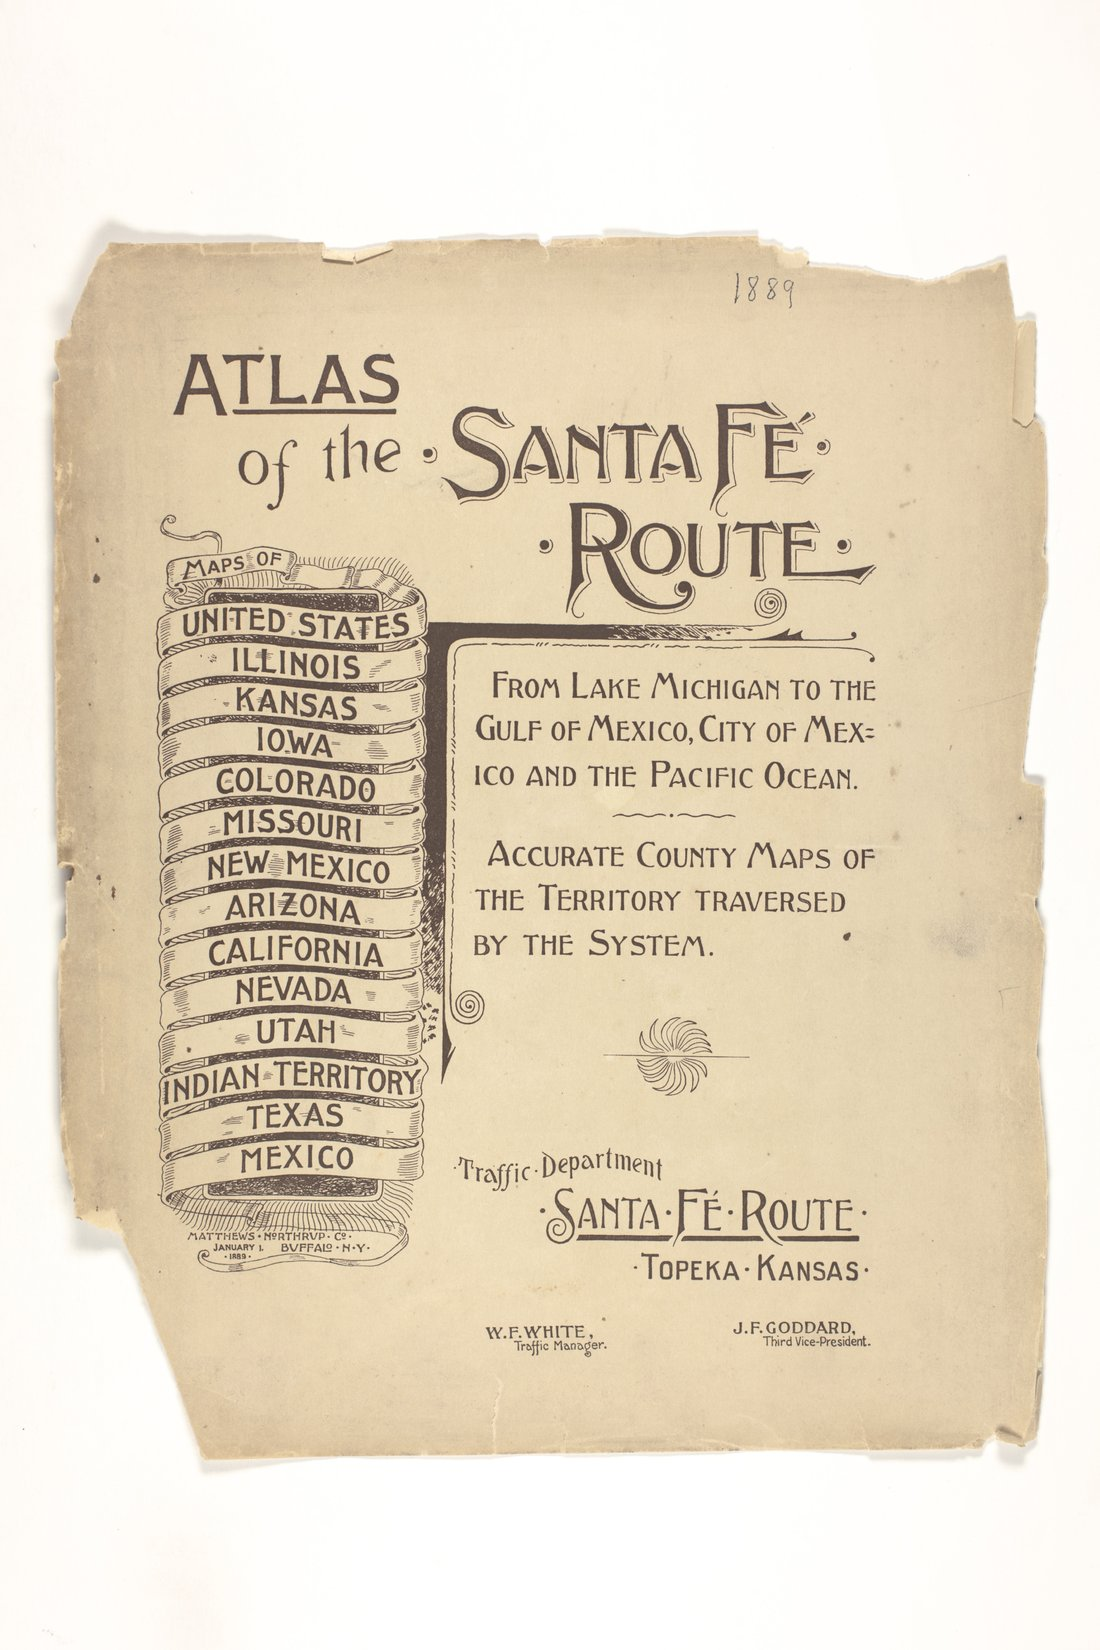 Atlas of the Santa Fe Route - 1889 edition - Title page